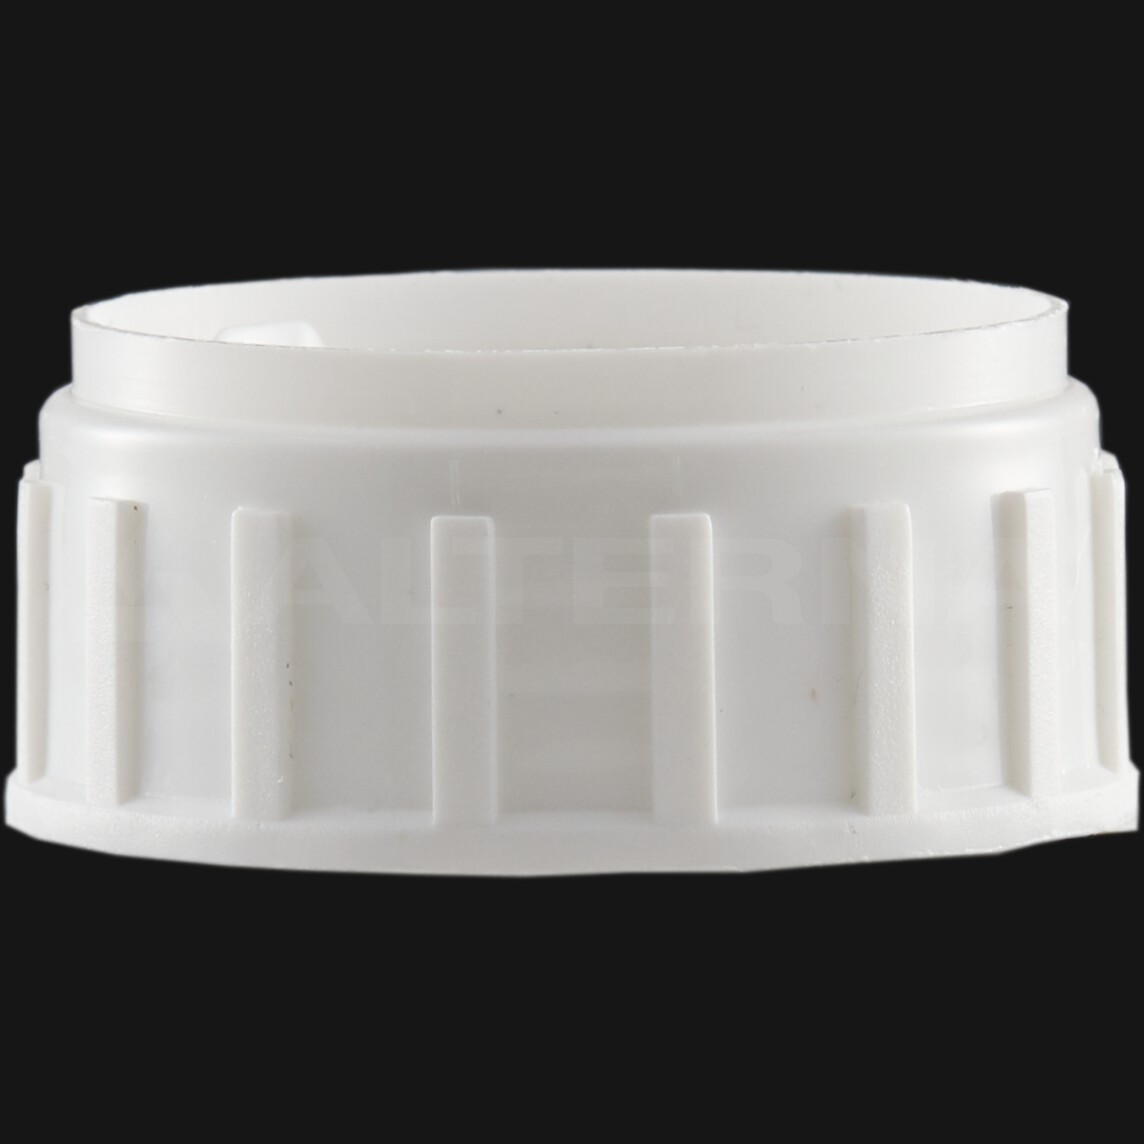 50 mm Aluminum Foil Seal Cap